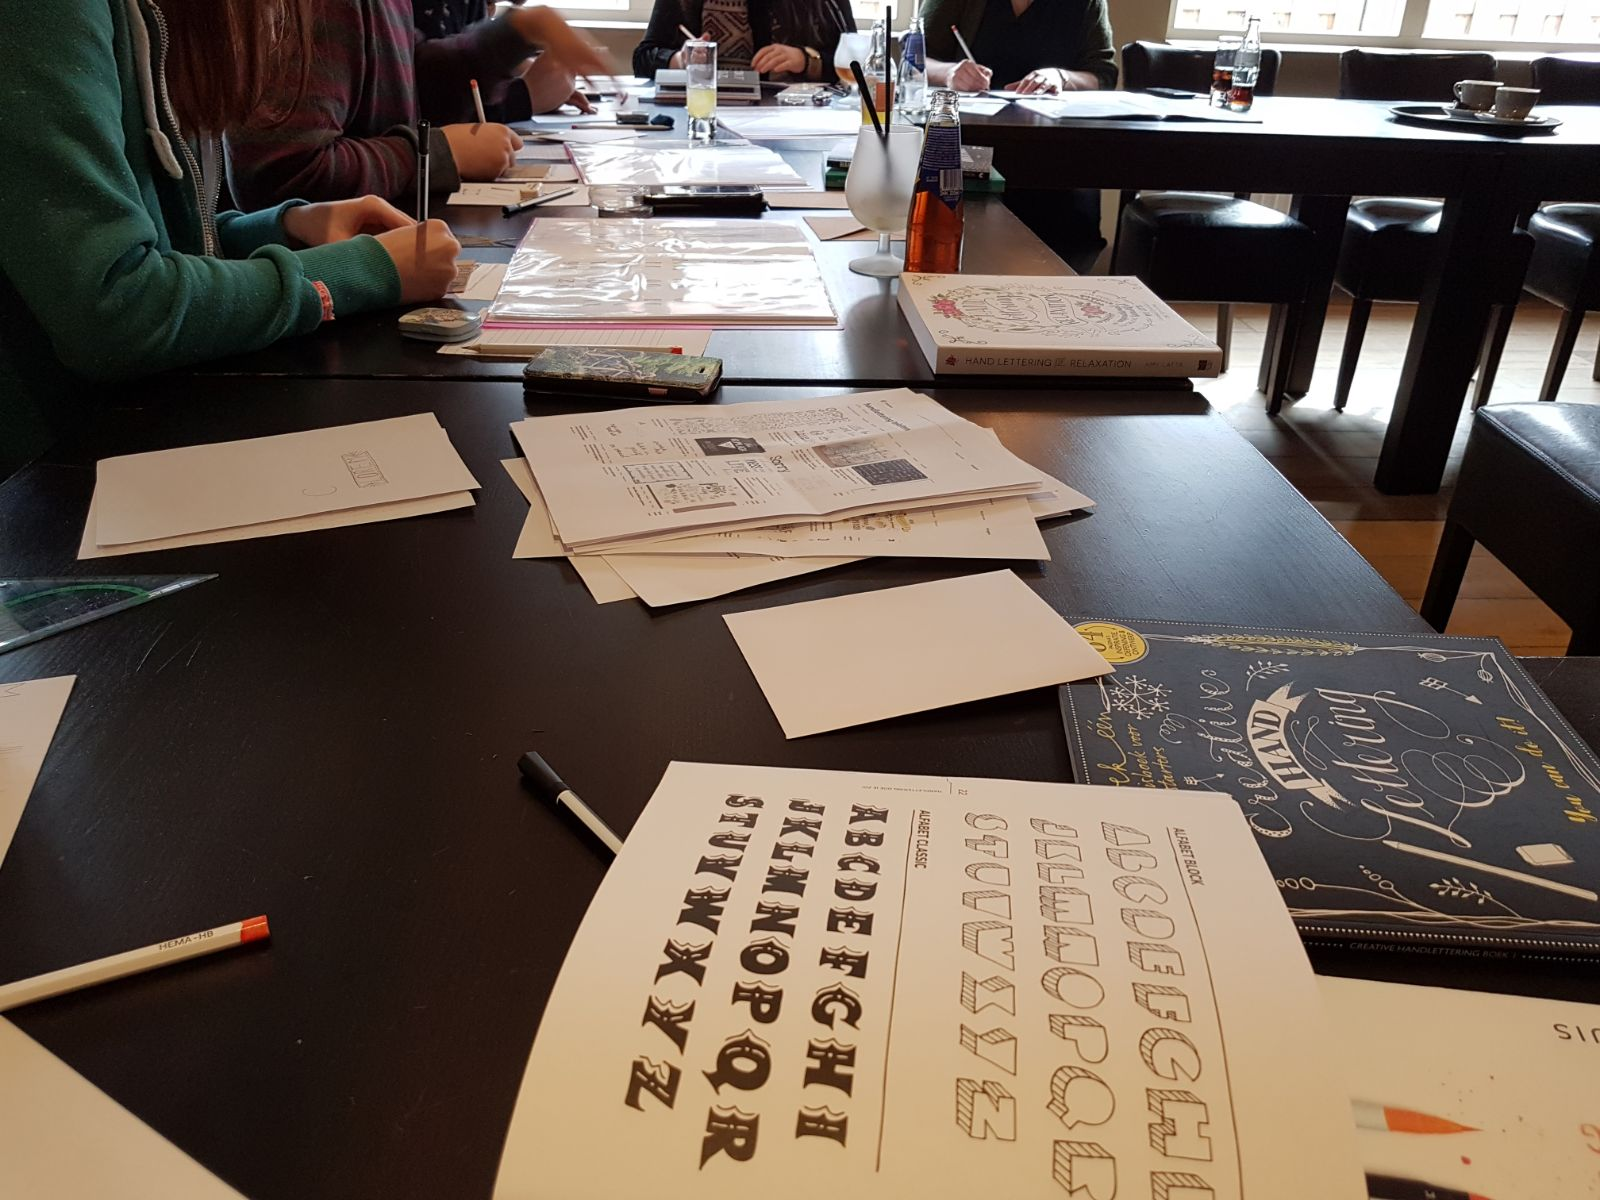 Foto 's workshop handlettering TEENS Maart 2018 - DKS